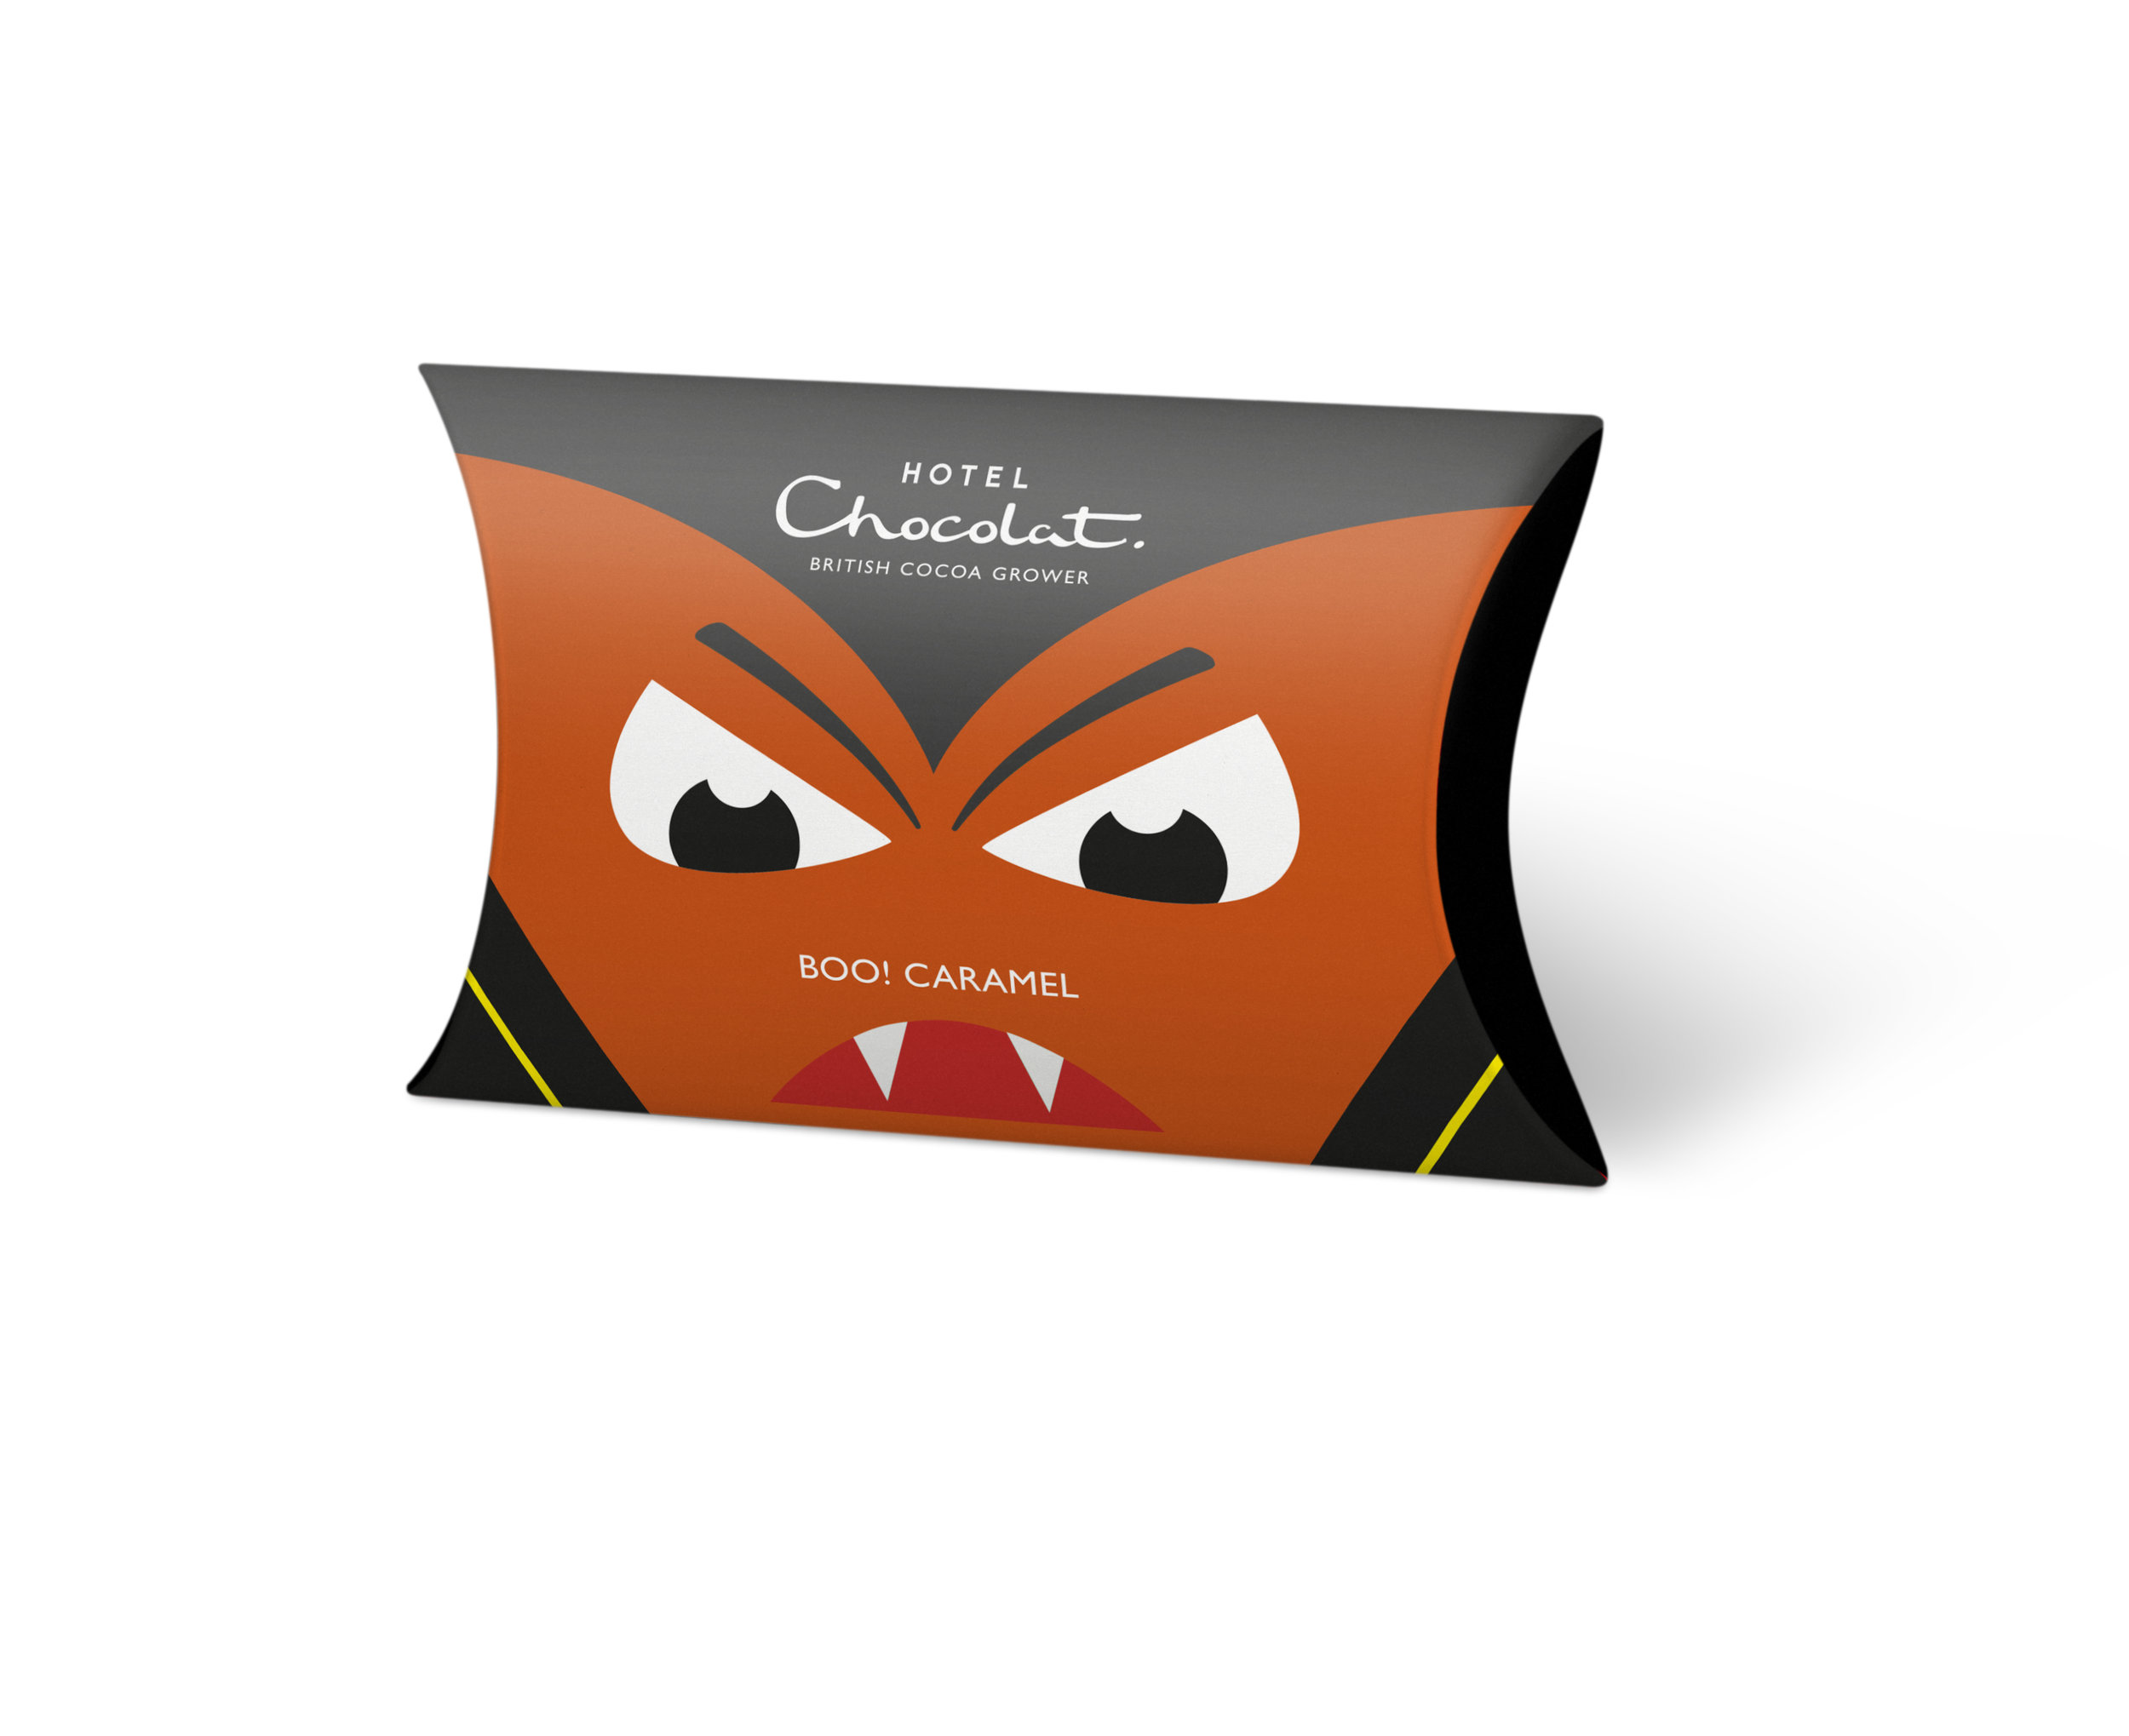 Yikes! Cryptopher the Vampire – Caramel ChocolateSwoop and dive on 40% milk chocolate scary shapes. Halloween vampire chocolate ideas for kids - perfect for a trick or treat. - £2.50